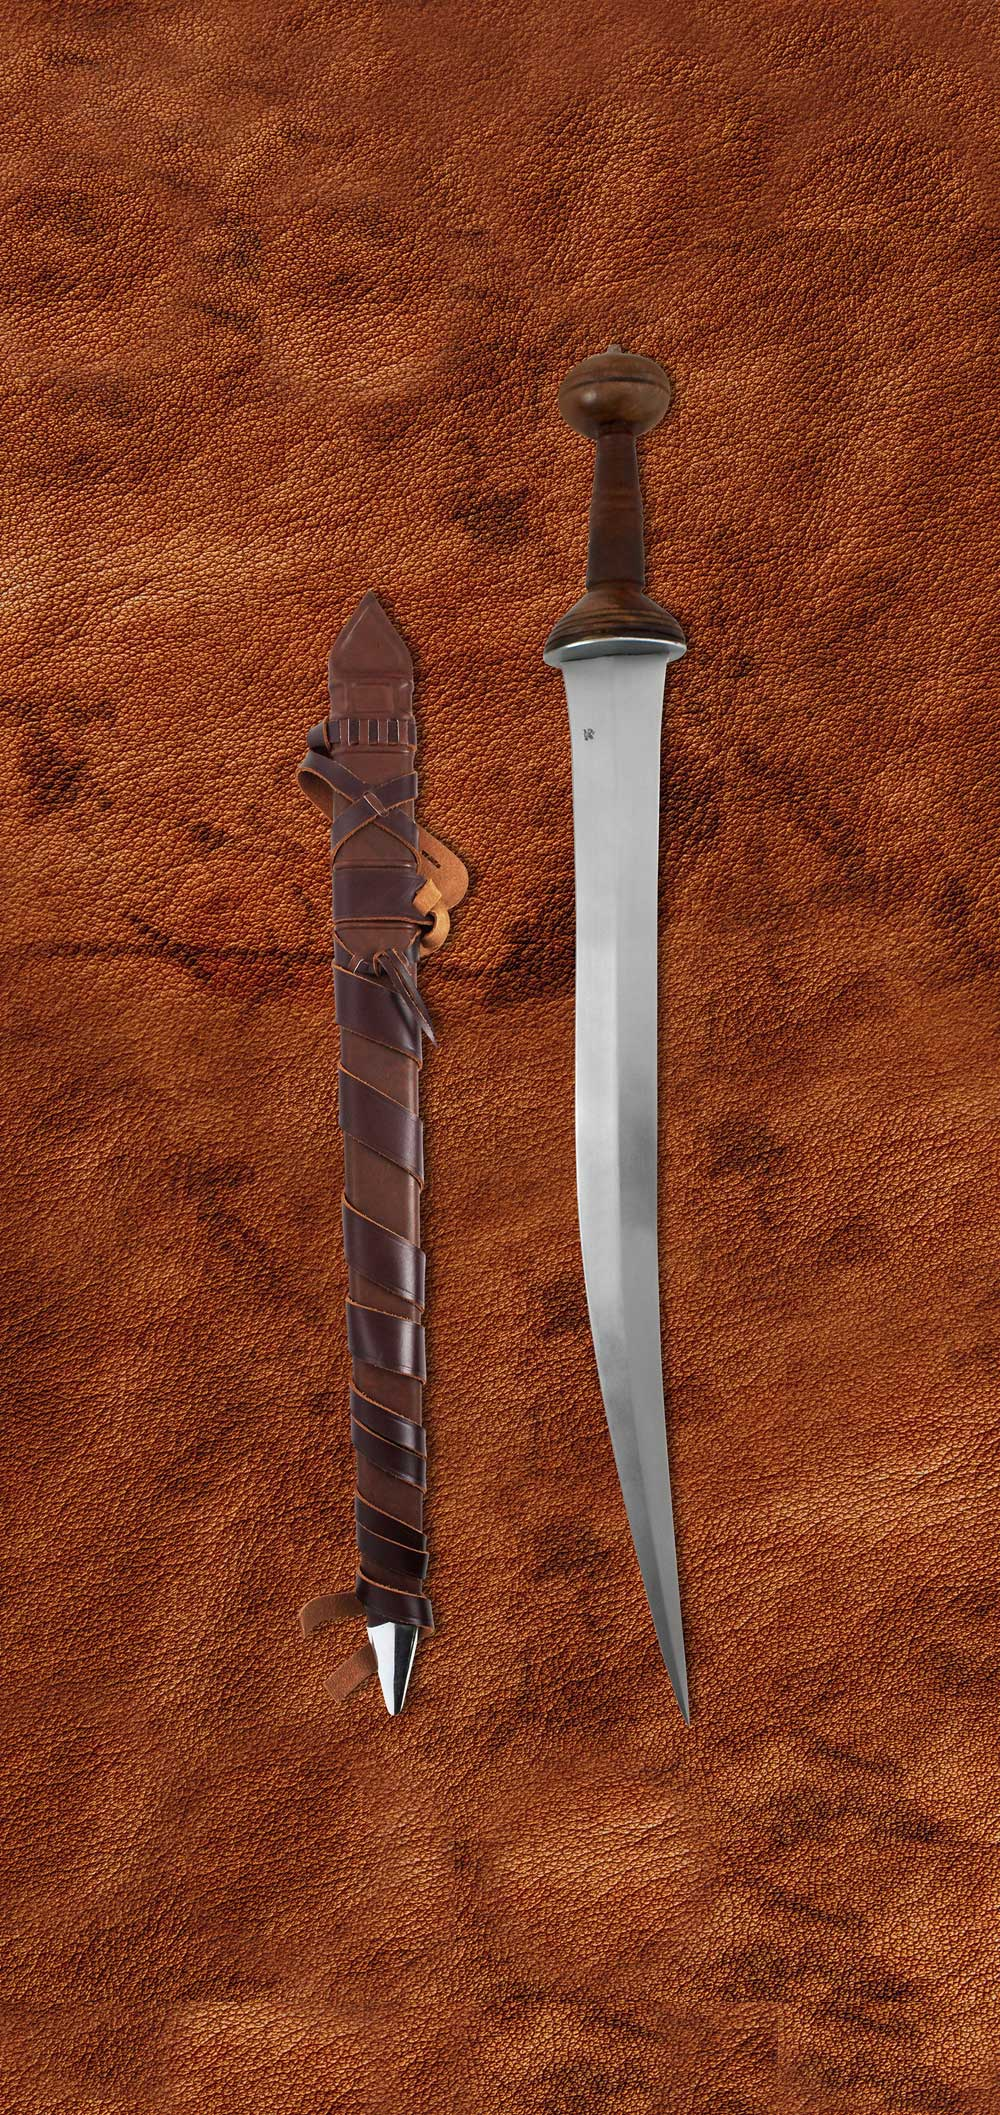 Darksword armory The Roman Gladiator Sword